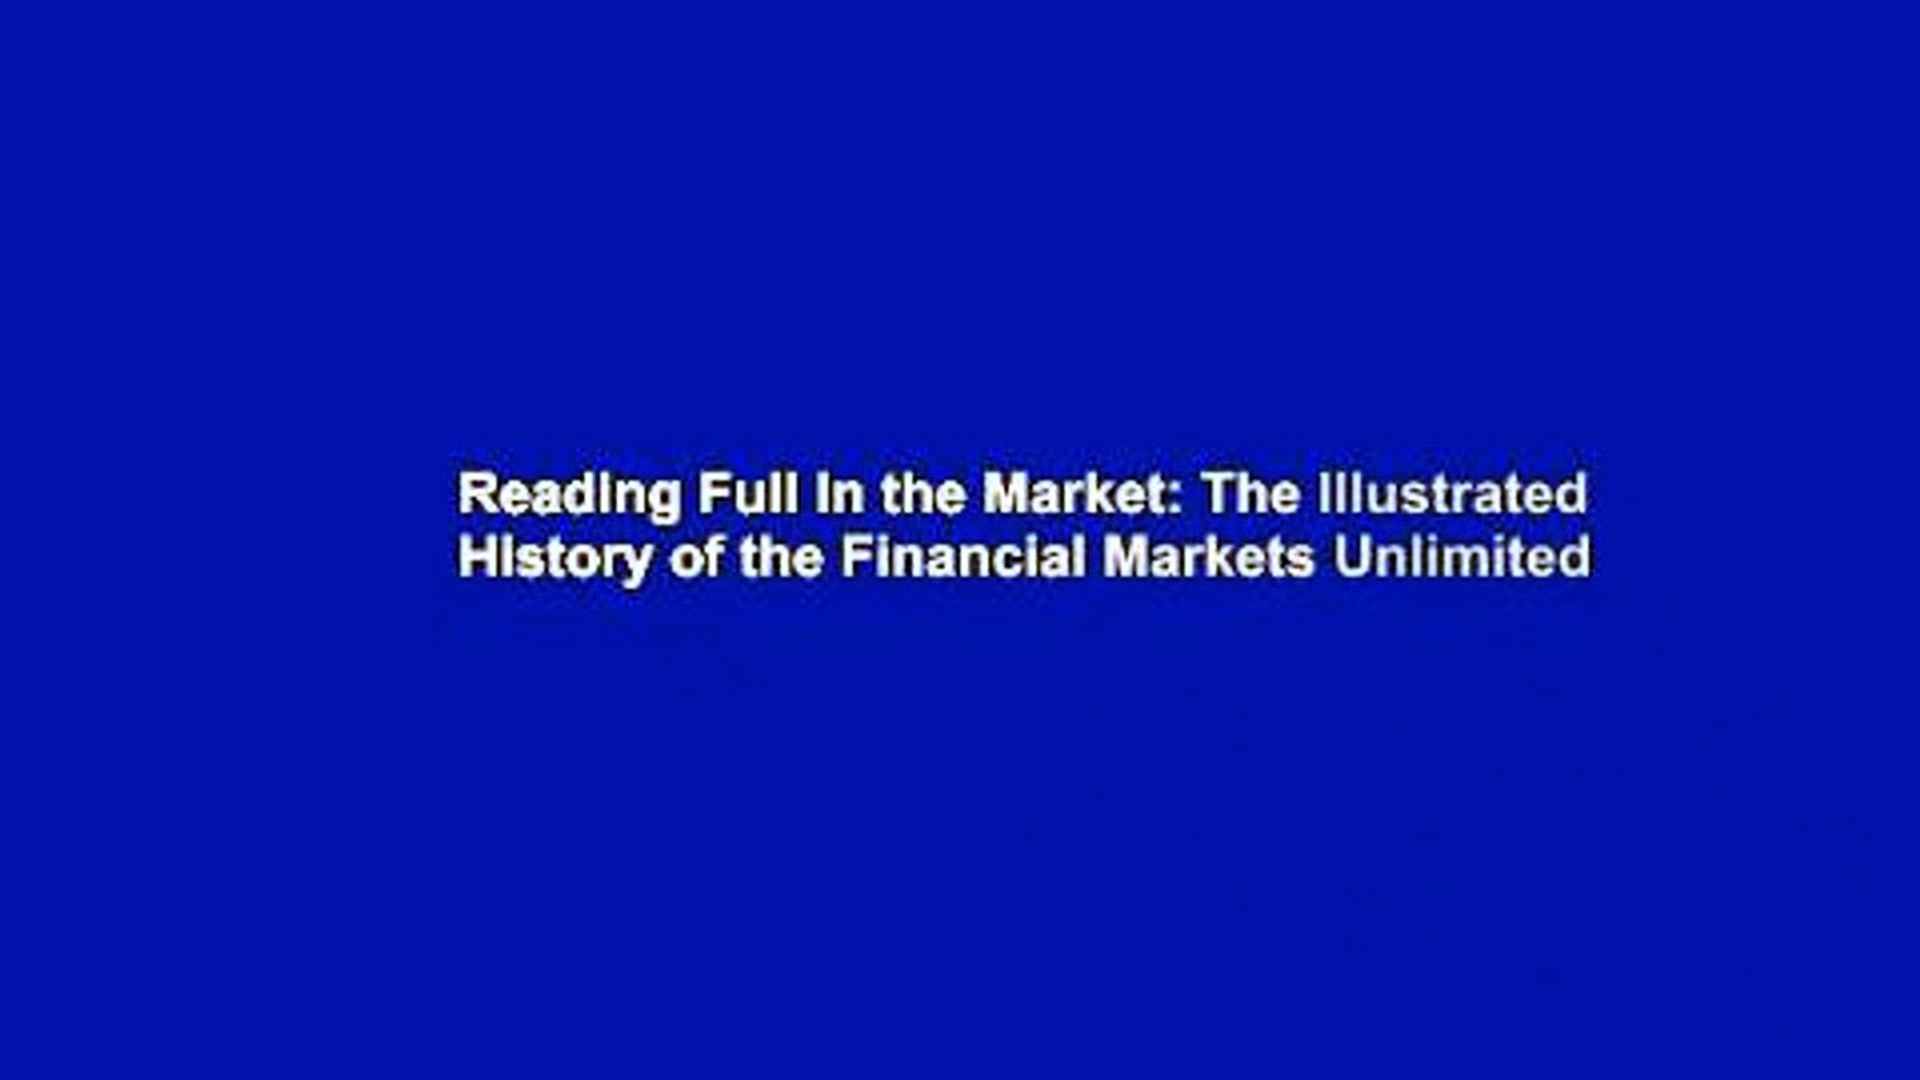 Reading Full In the Market: The Illustrated History of the Financial Markets Unlimited